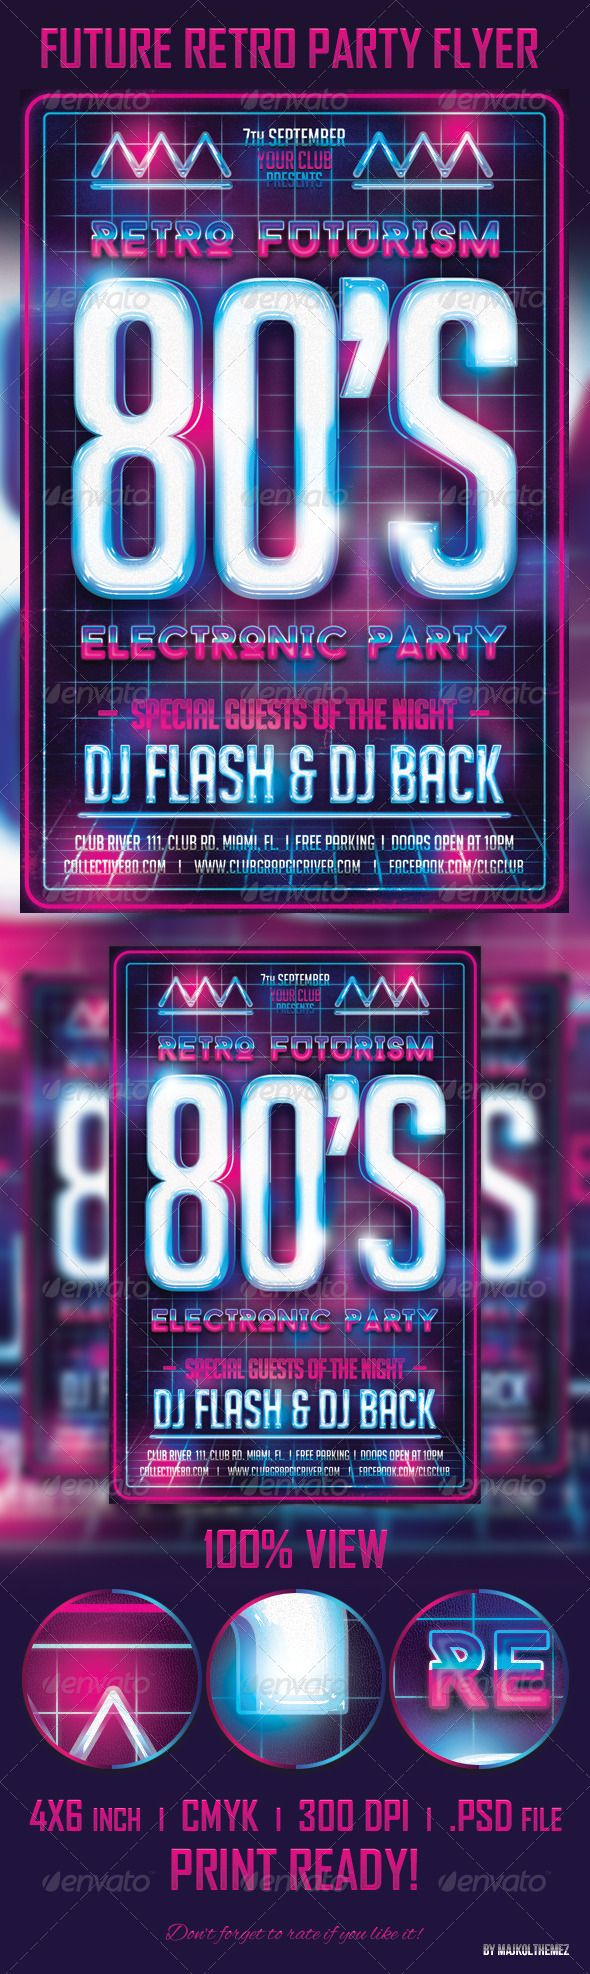 Future Retro Party Flyer Template — Photoshop PSD #electronic flyer #trance • Available here → https://graphicriver.net/item/future-retro-party-flyer-template/5484327?ref=pxcr